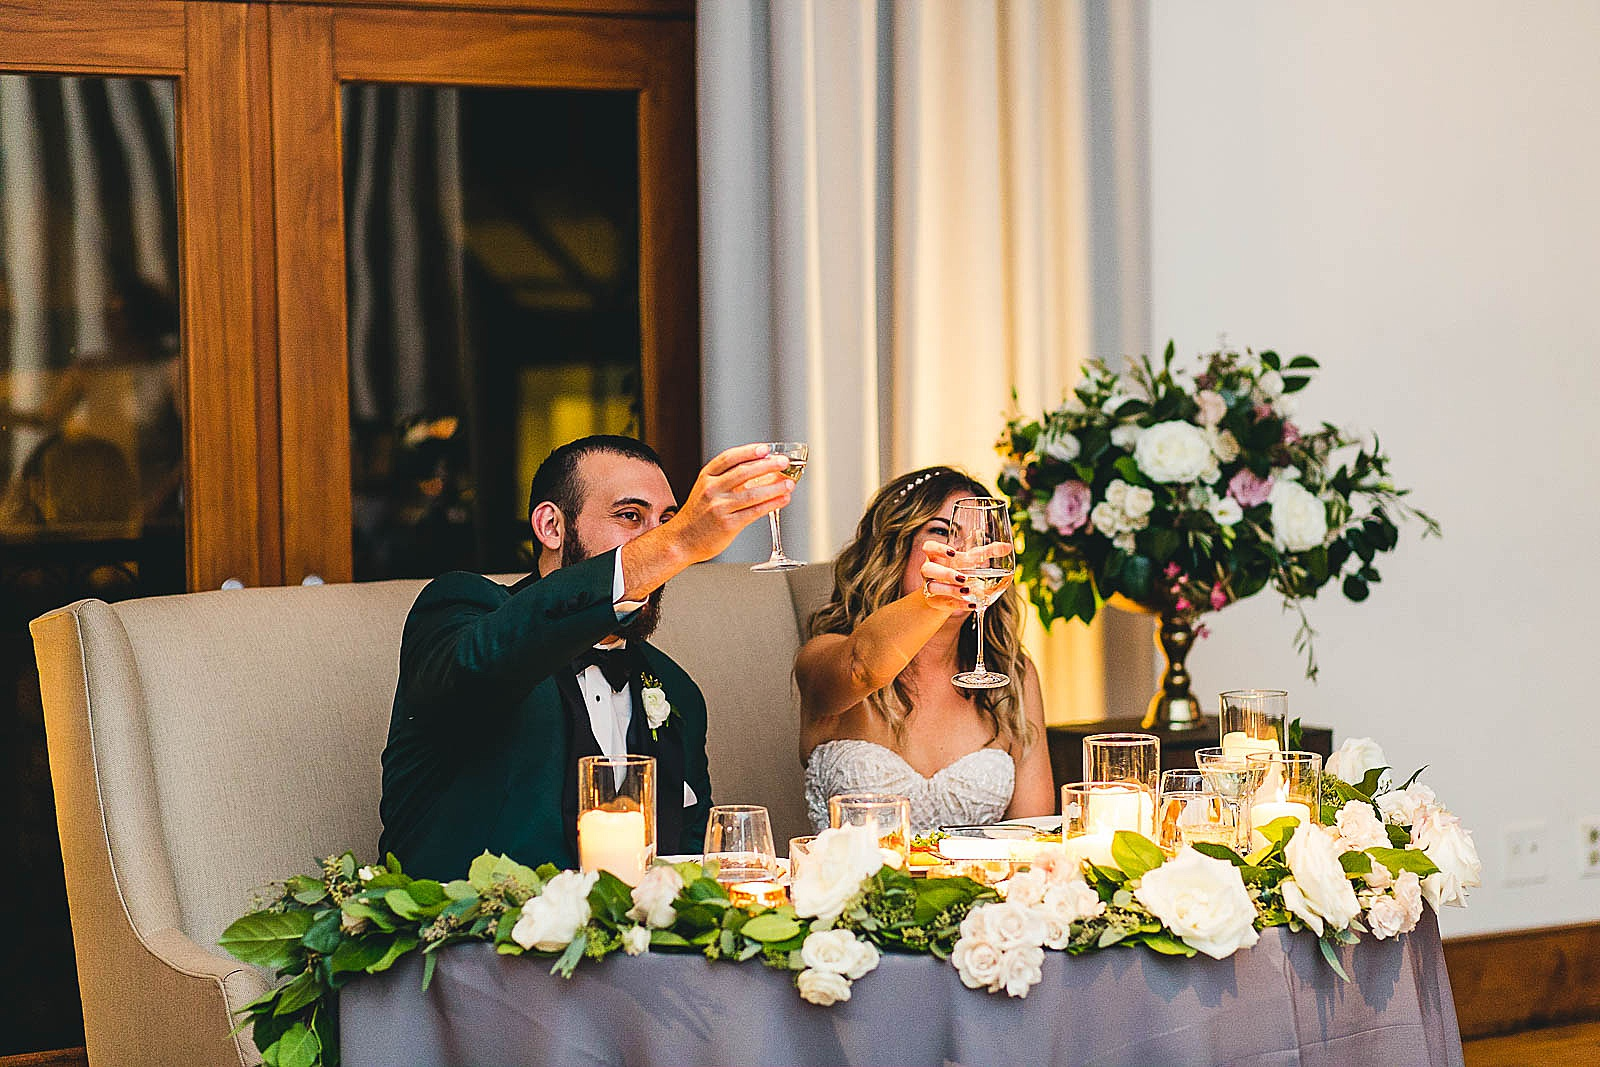 54 toasts at ivy room in chicago - Ivy Room Chicago Wedding Photos // Bethany + Anthony